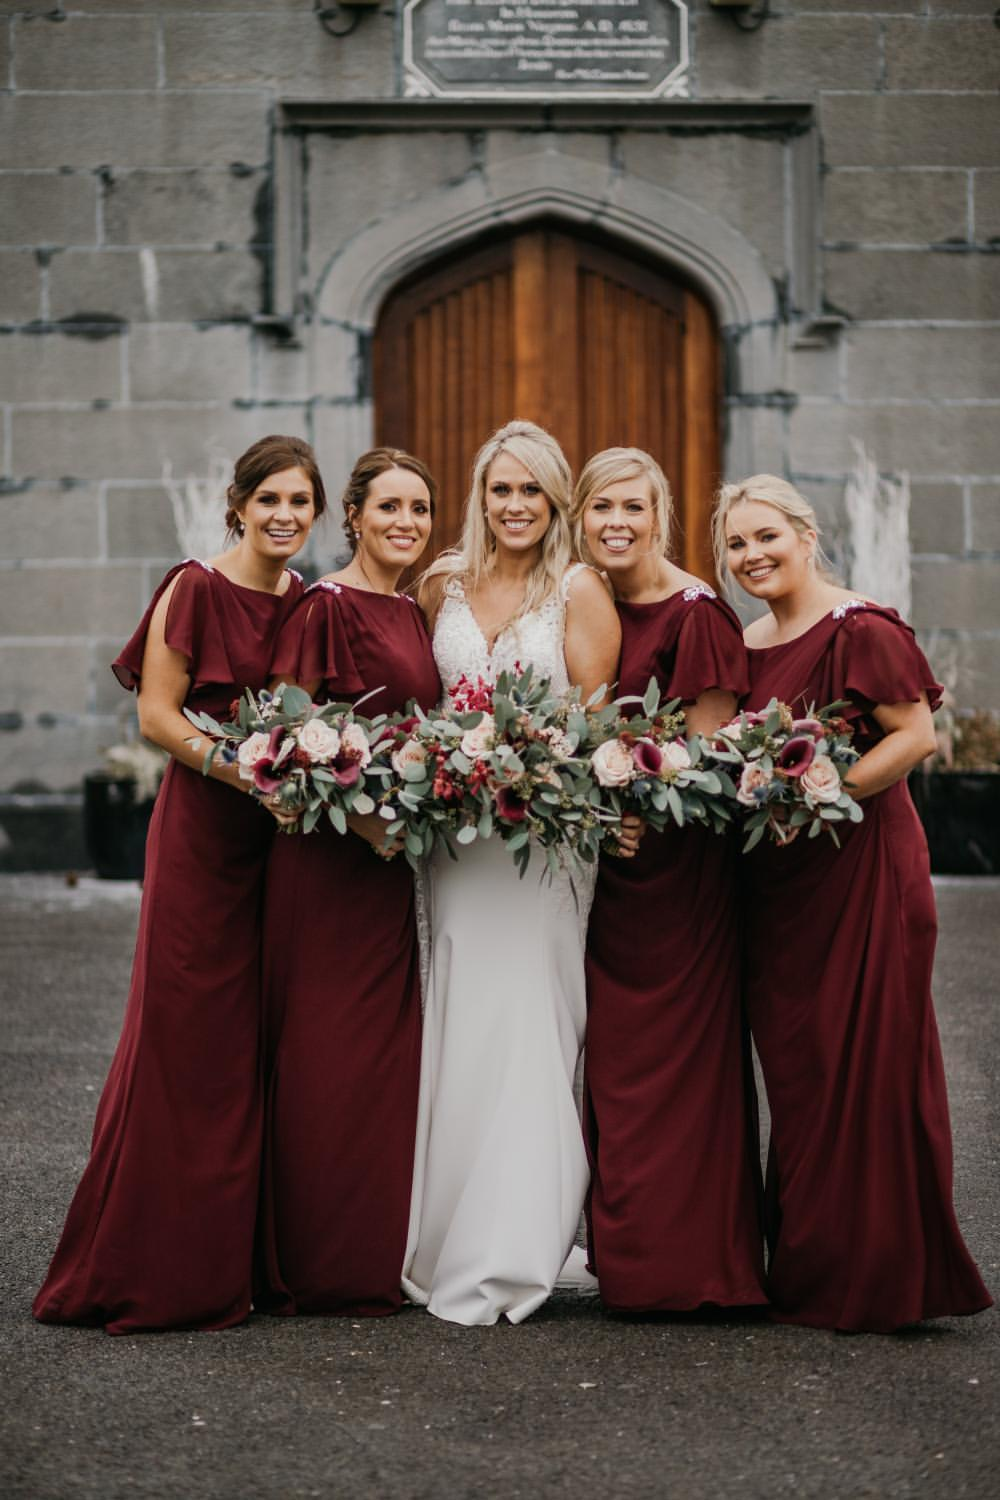 Winter wedding bride and bridesmaids bouquets